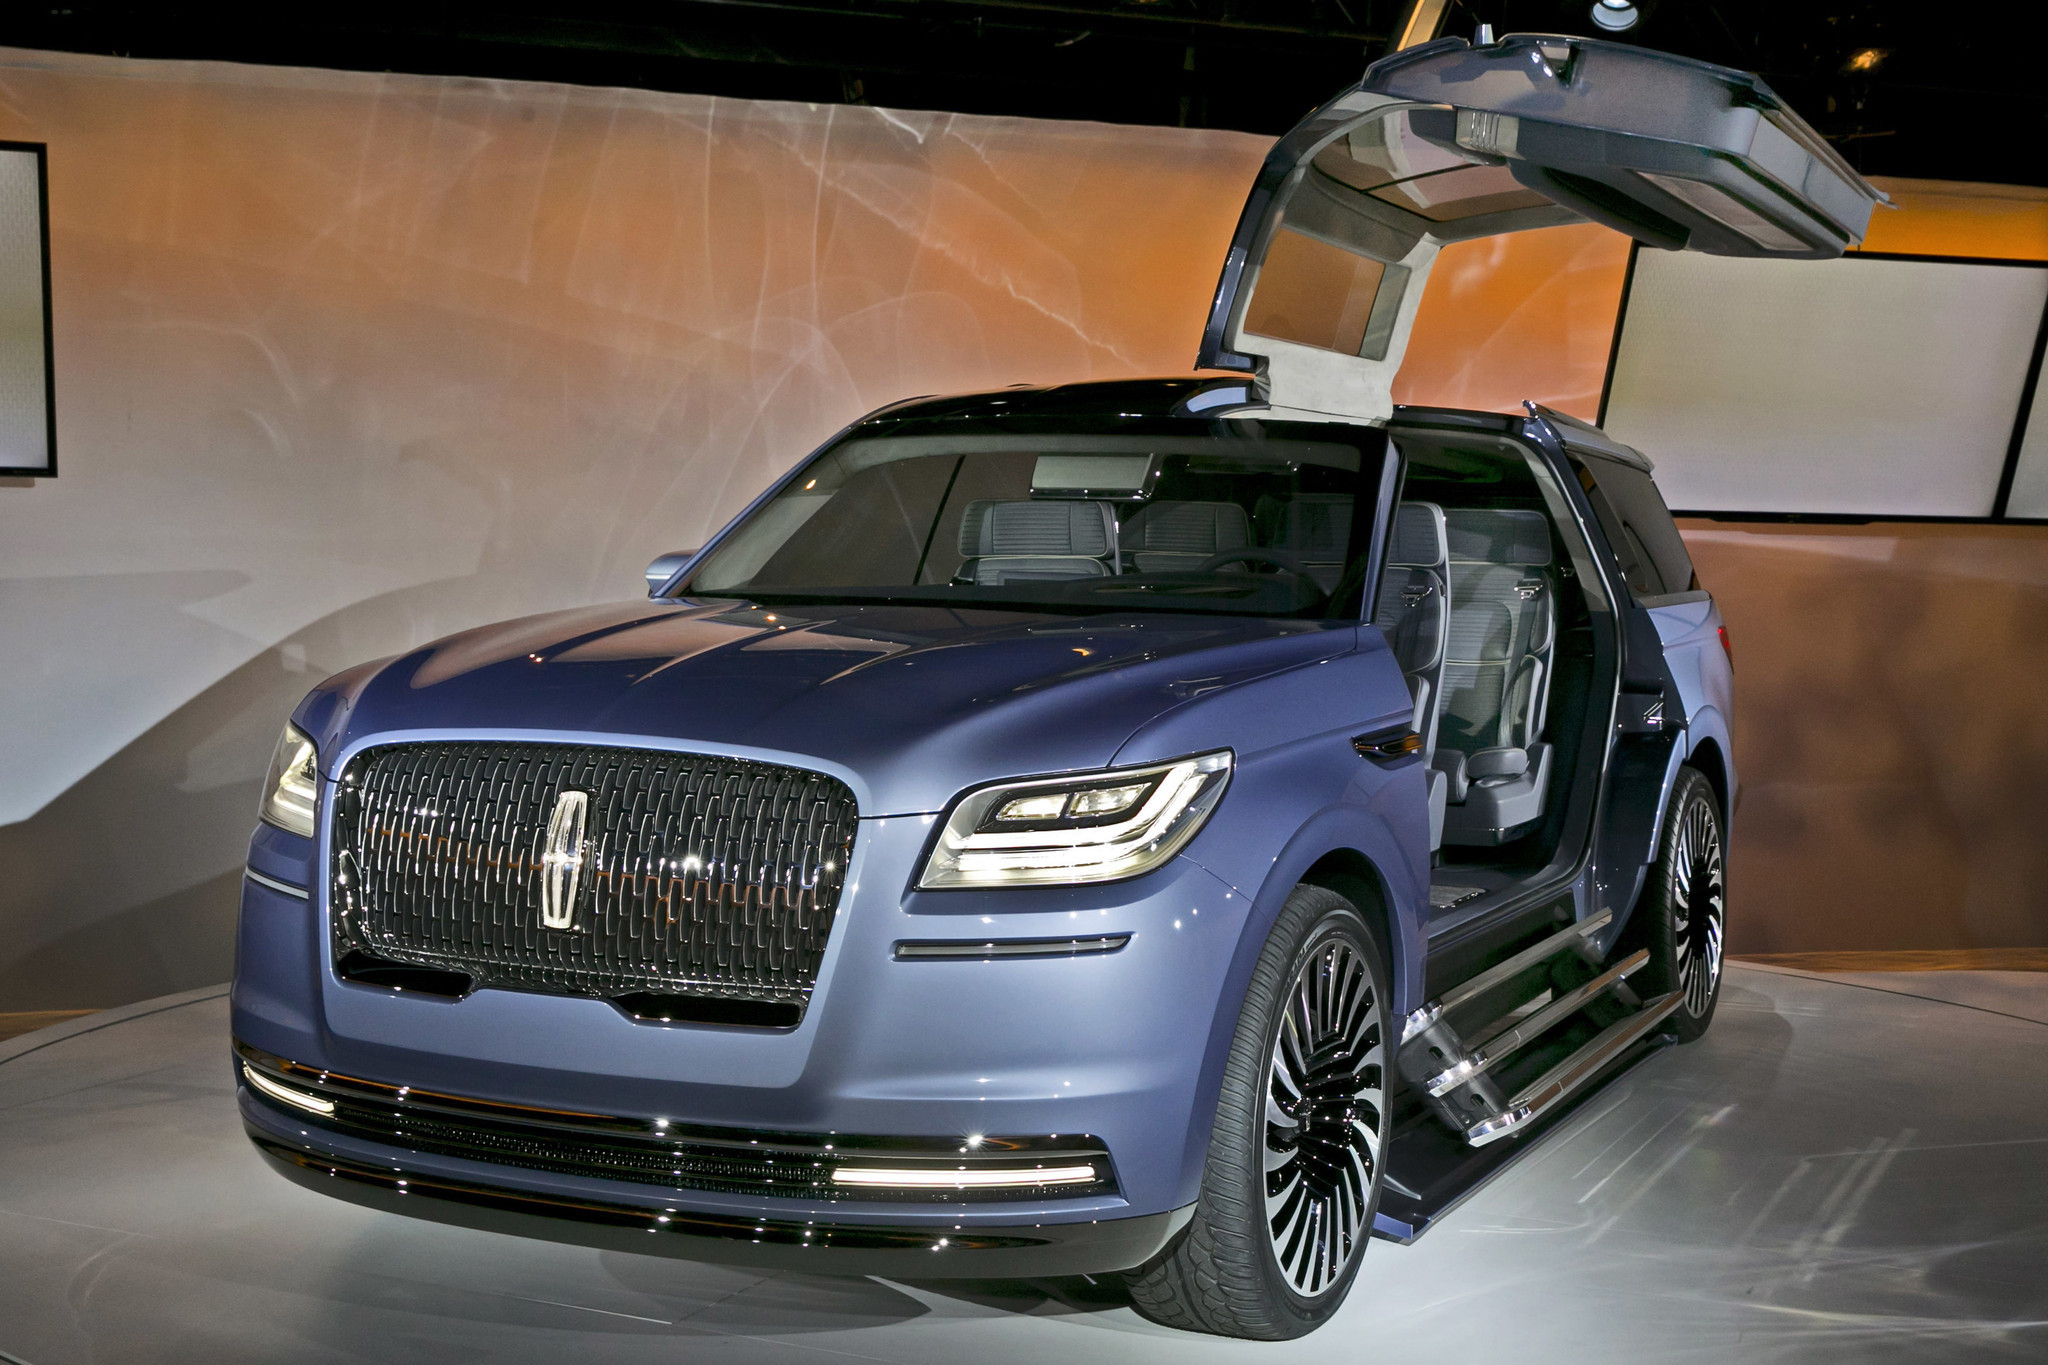 chi-apphoto-auto-show-lincoln-navigator5-wre0037381517-20160321 Outstanding Lincoln Continental New York Auto Show Cars Trend